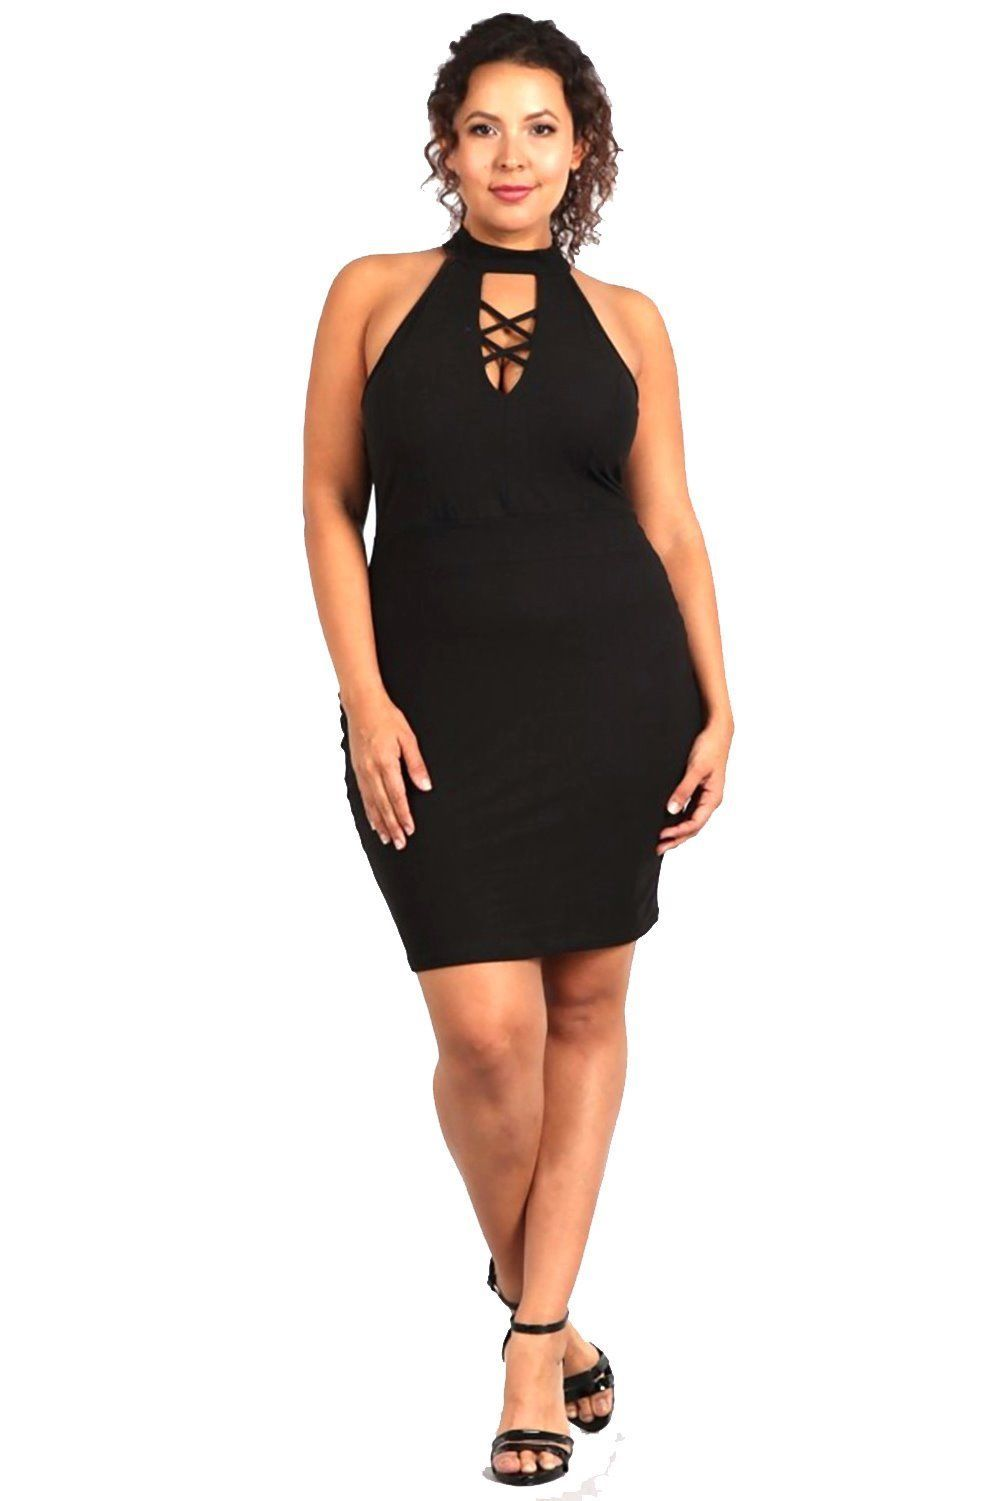 14791D - Plus Size, Solid, Sleeveless Crisscross At Front, Body-Con Mini Dress